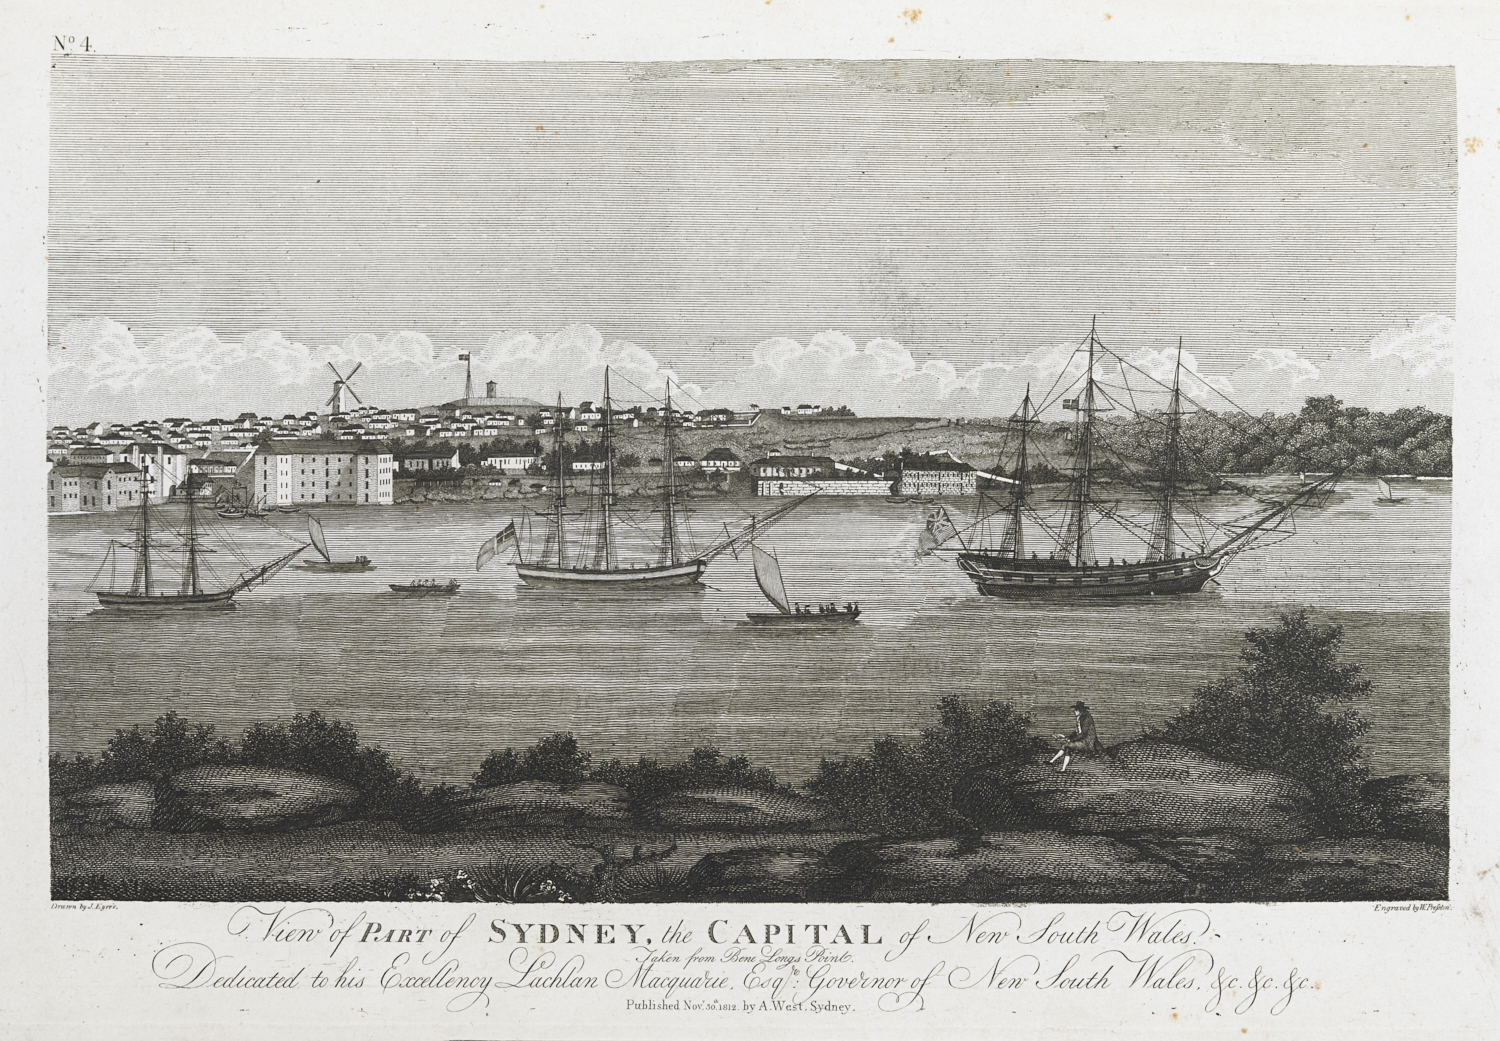 View of PART of SYDNEY, the CAPITAL of New South Wales; Taken from Bene Longs Point